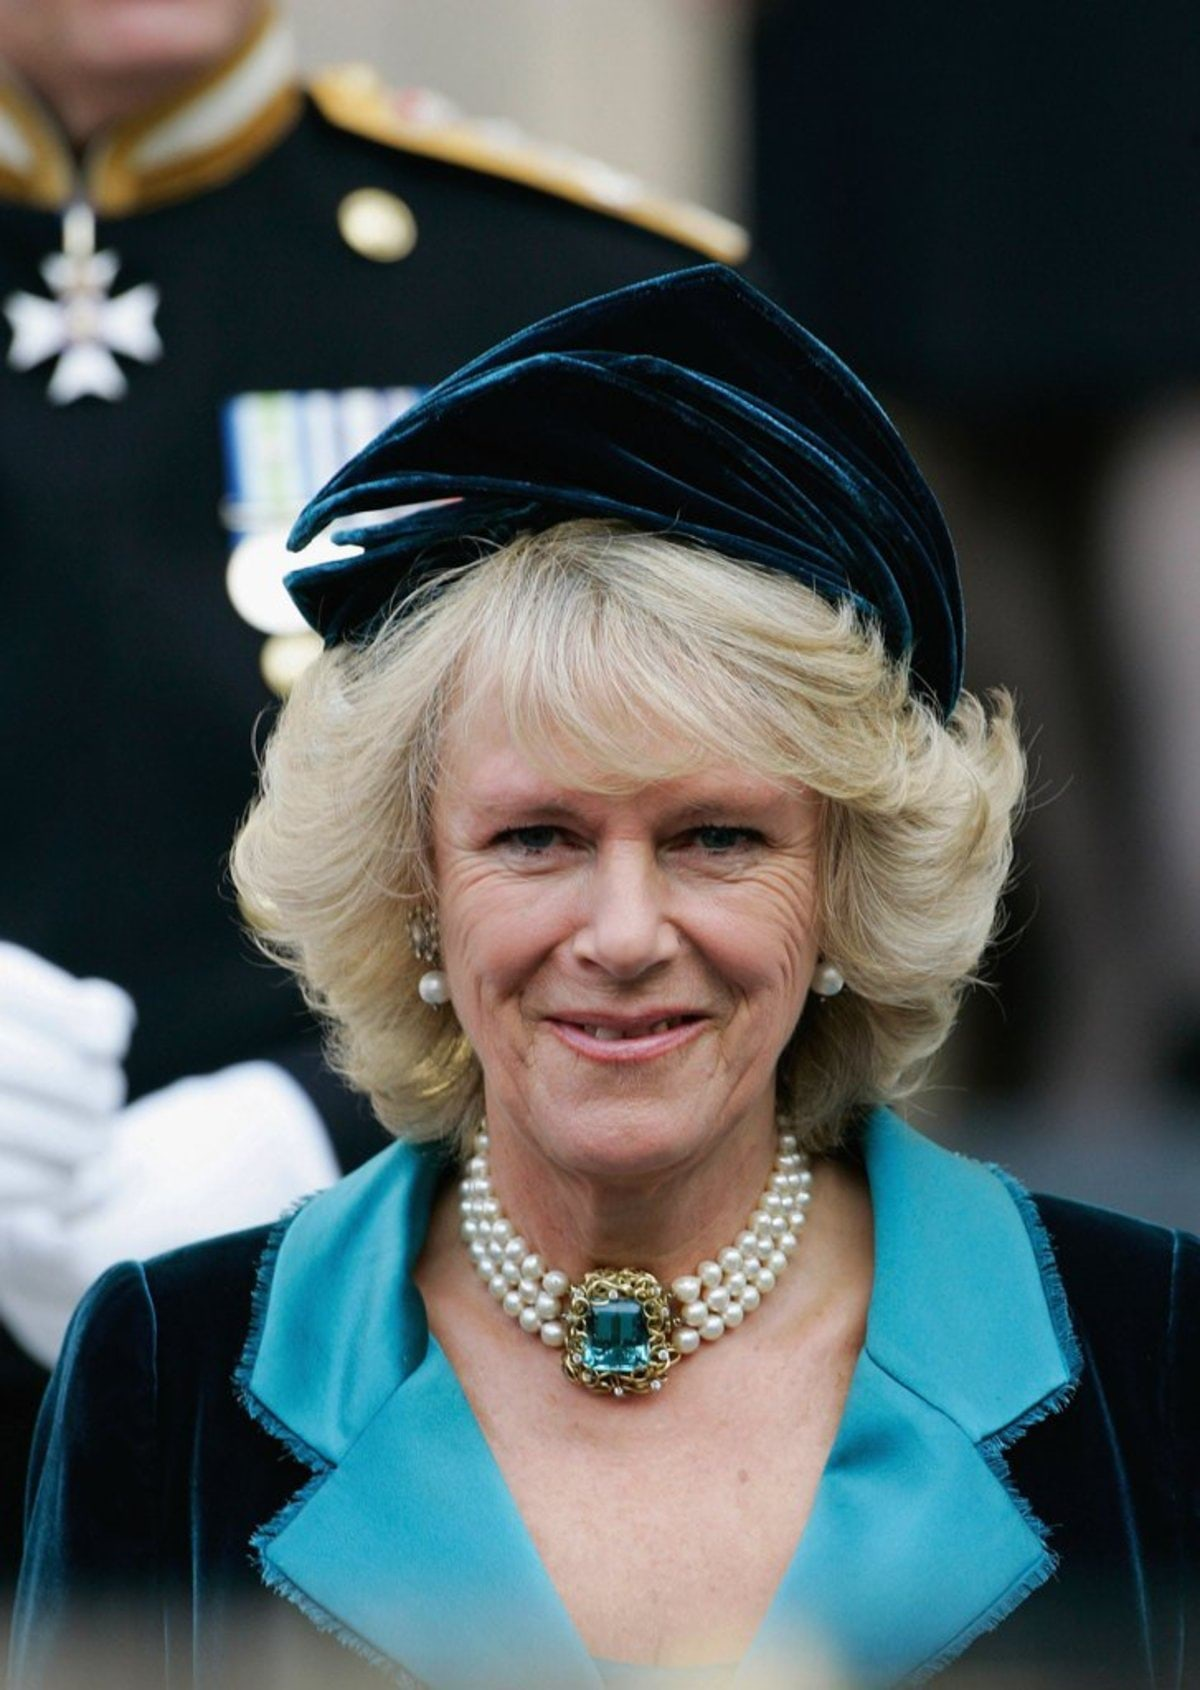 Camilla-aquamarine-Duchess-has-penchant-chokers